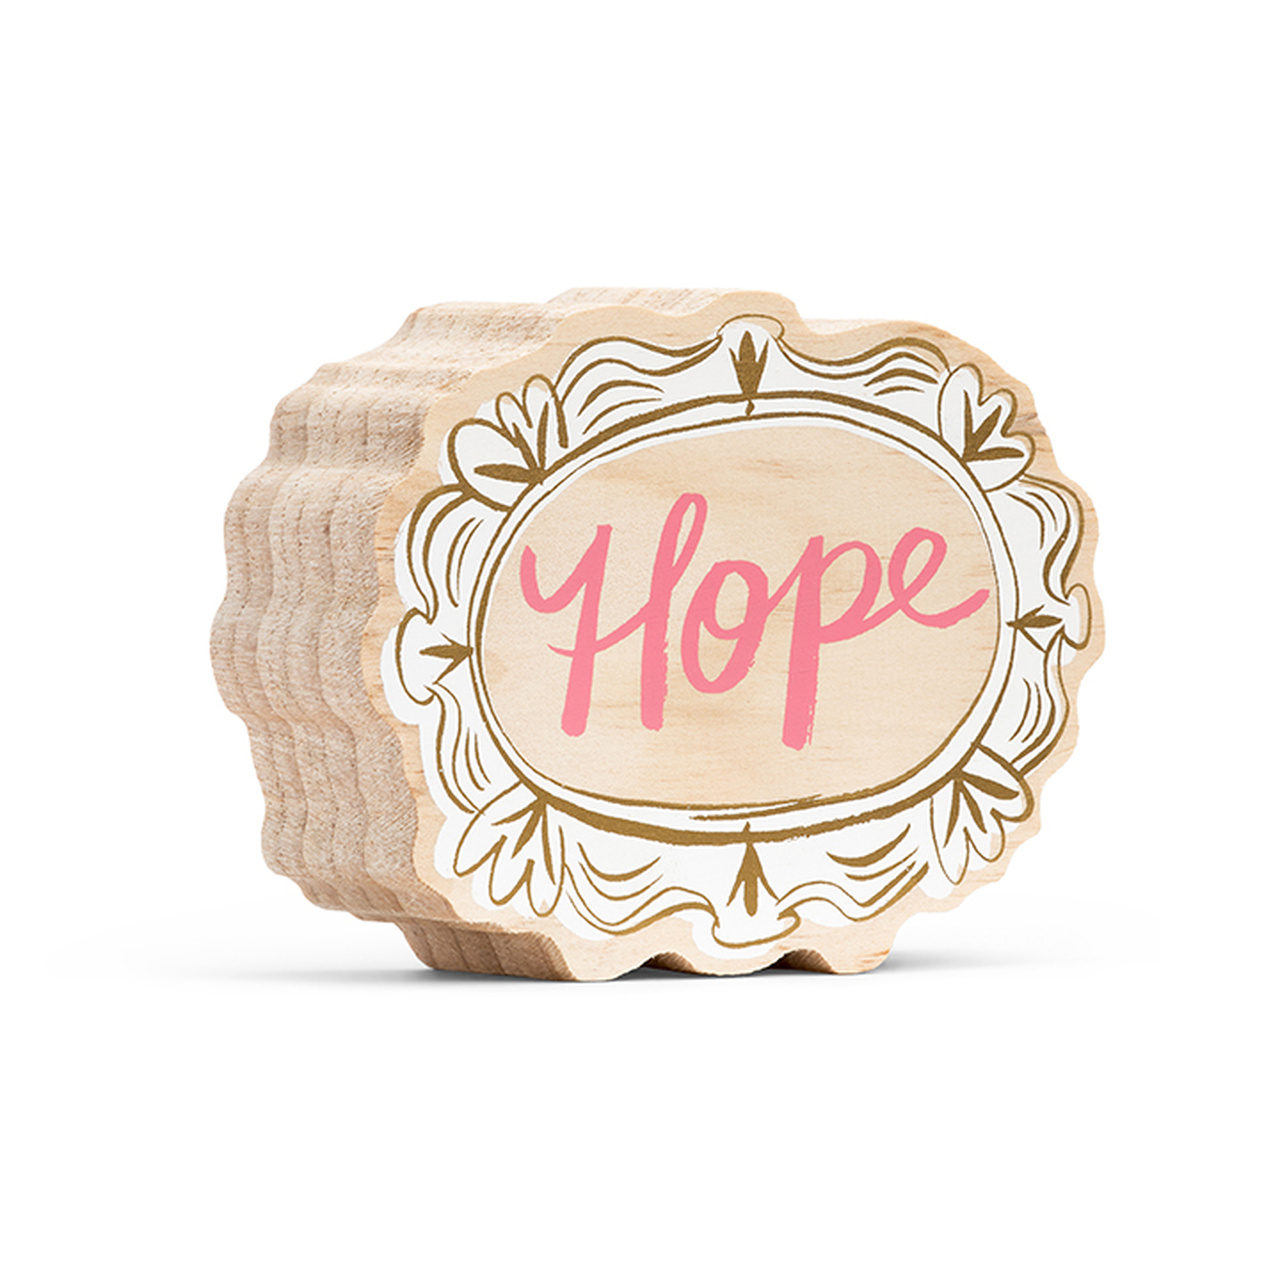 Here & There Inspiring Art Printed on Wood